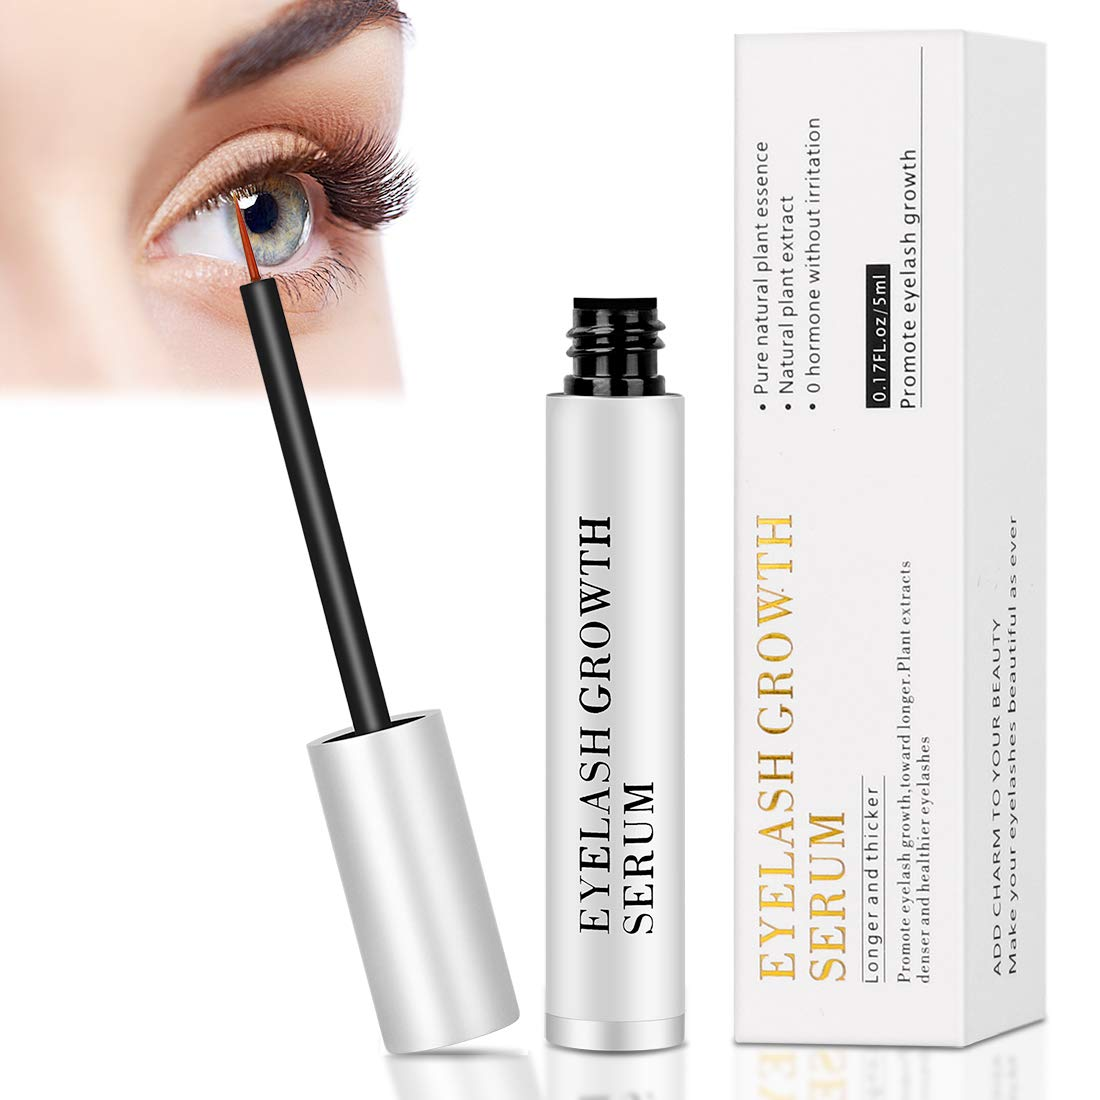 83ebfd5a533 Amazon.com: Lash Growth Serum Enhancer- Eyelash Growth Serum for Lashes  Gives You Thicker and Longer Eyelash: dsgbsdb104: Beauty